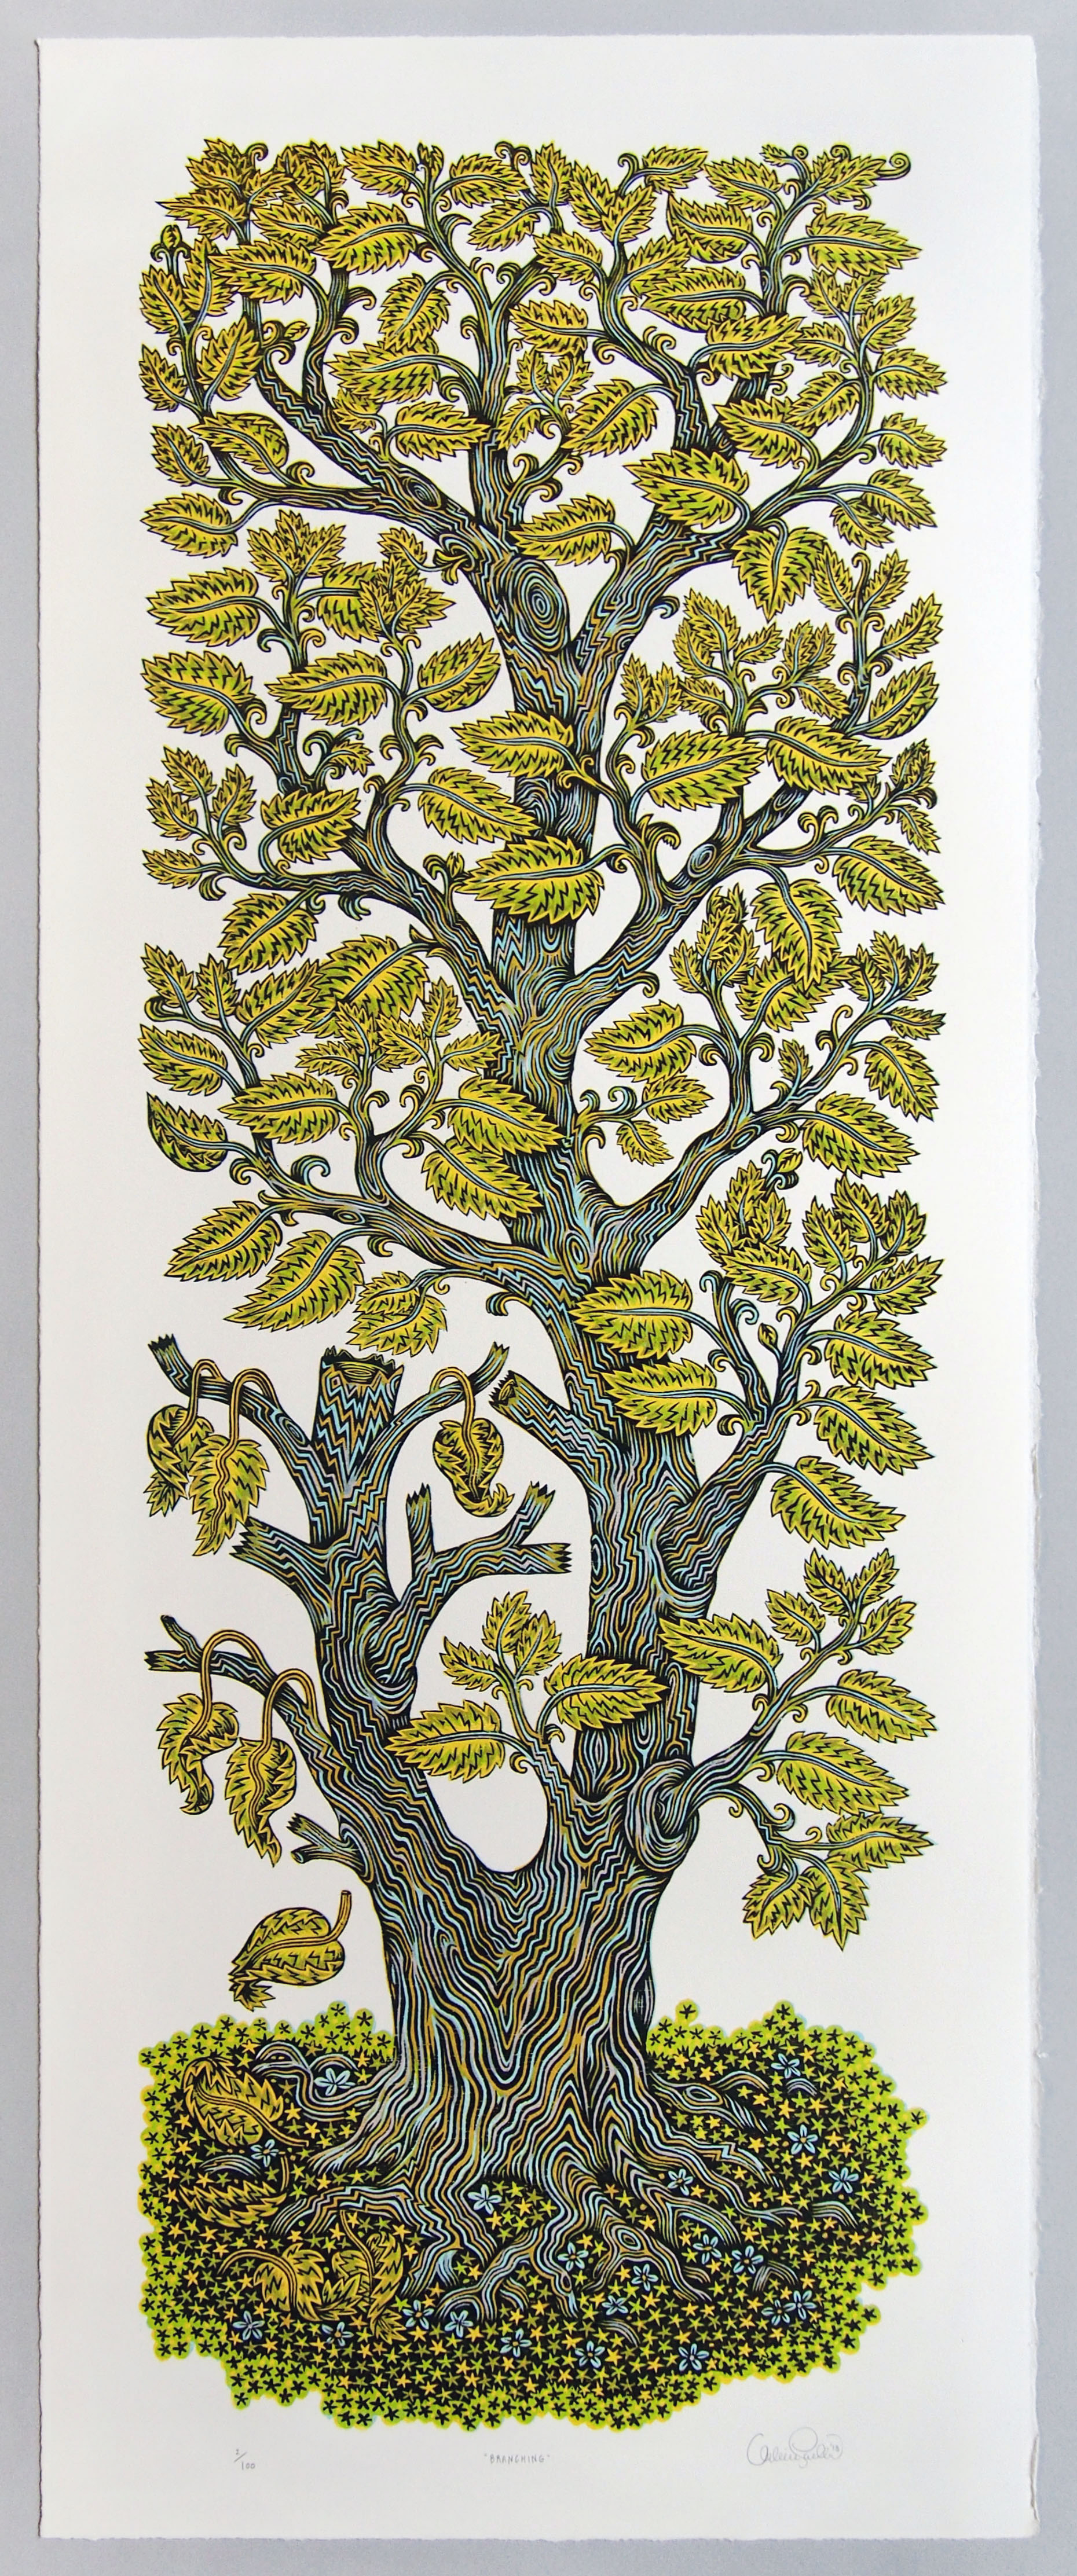 A Tall Leafy Tree Grows In Tugboat Printshop S New 4 Color